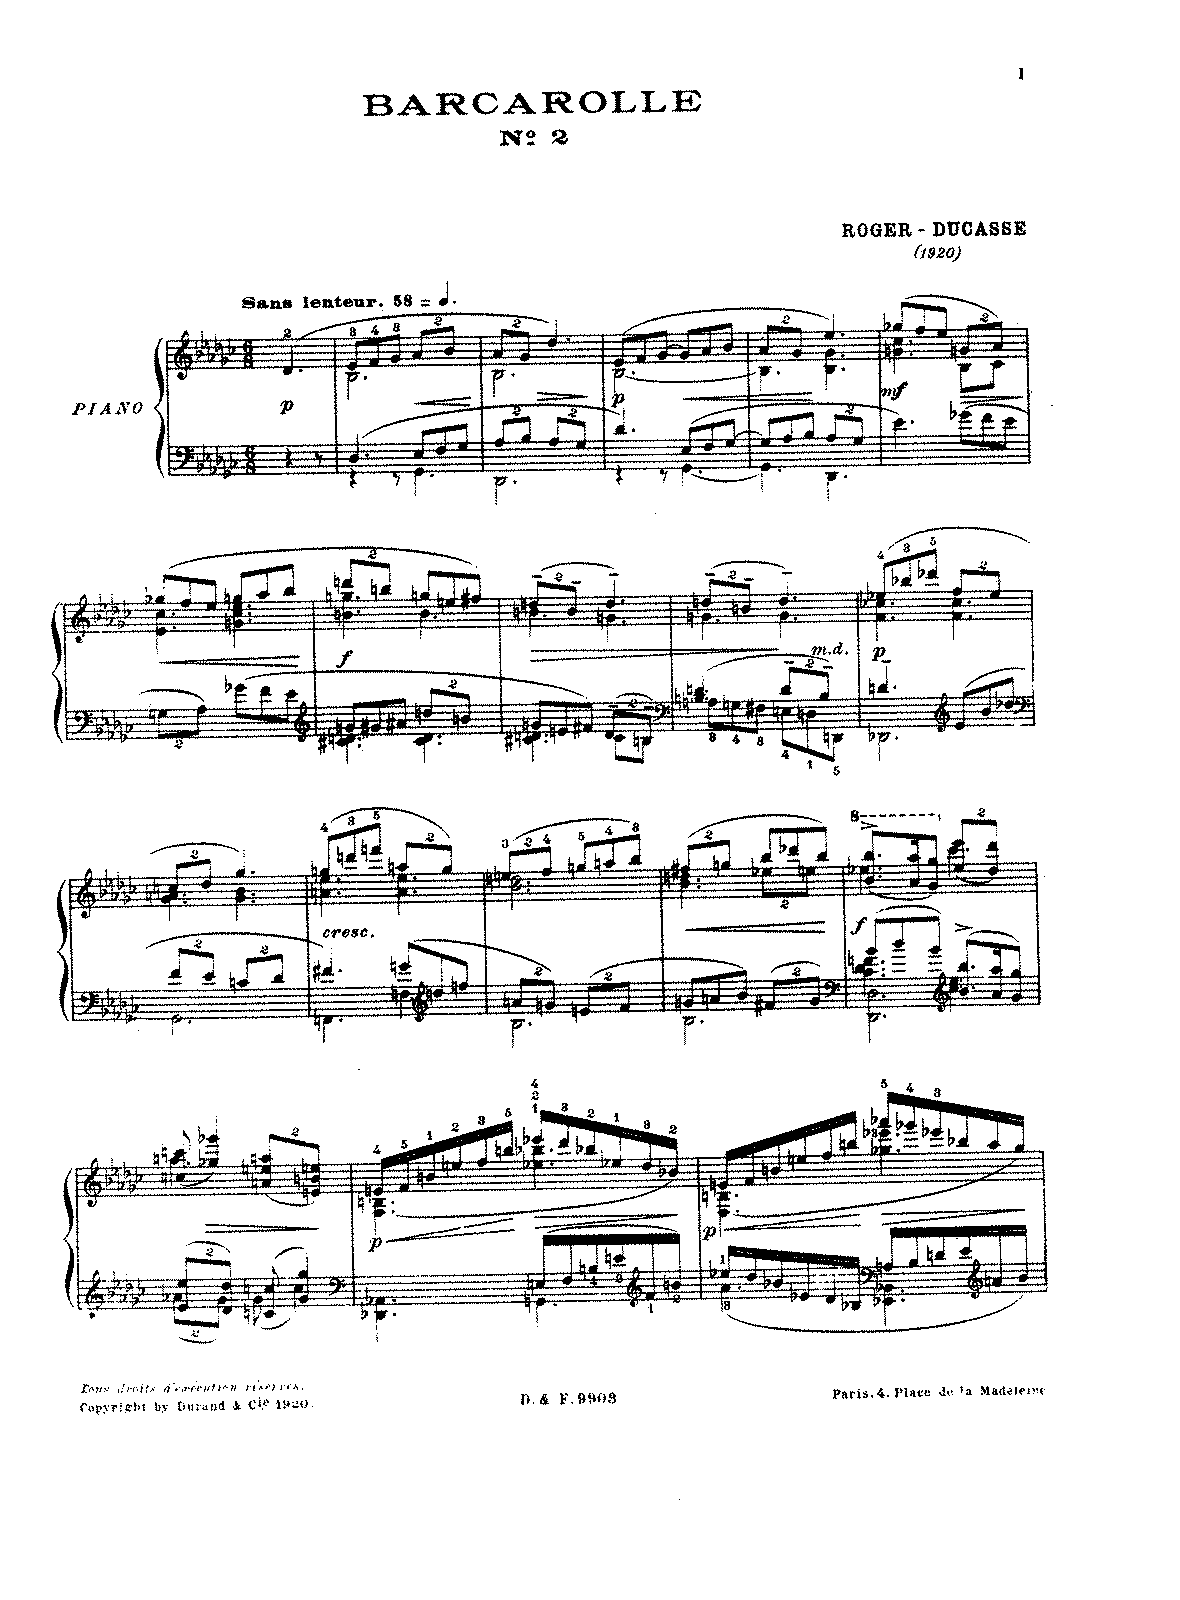 Roger-Ducasse - Barcarolle No.2 (piano).pdf